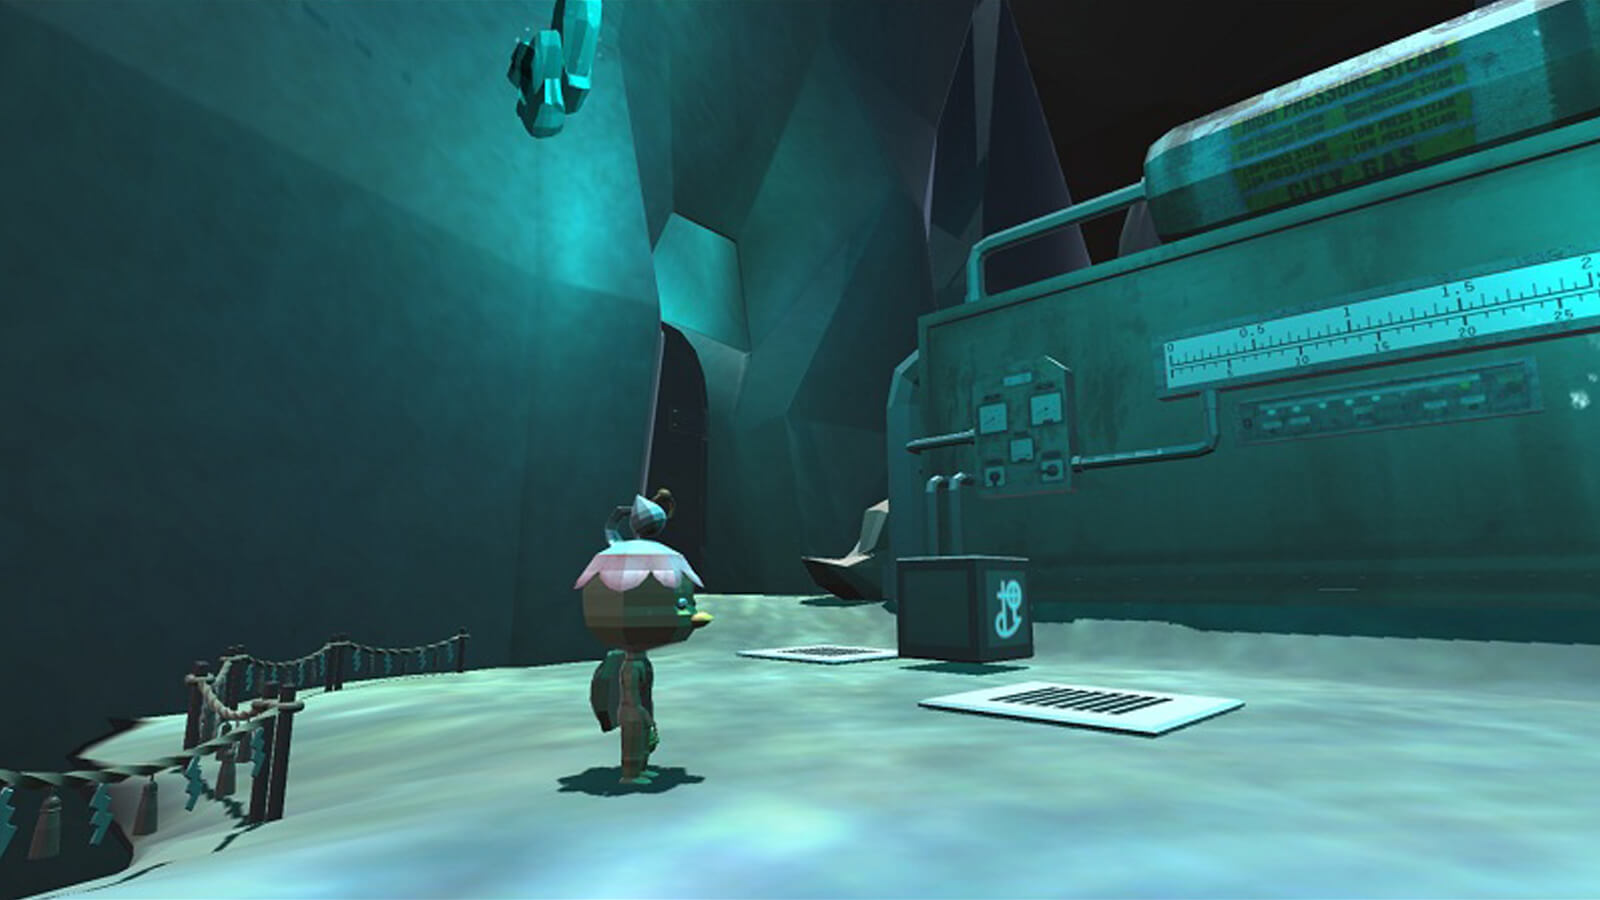 The kappa character stands in a dimly lit chamber with a large machine sitting nearby